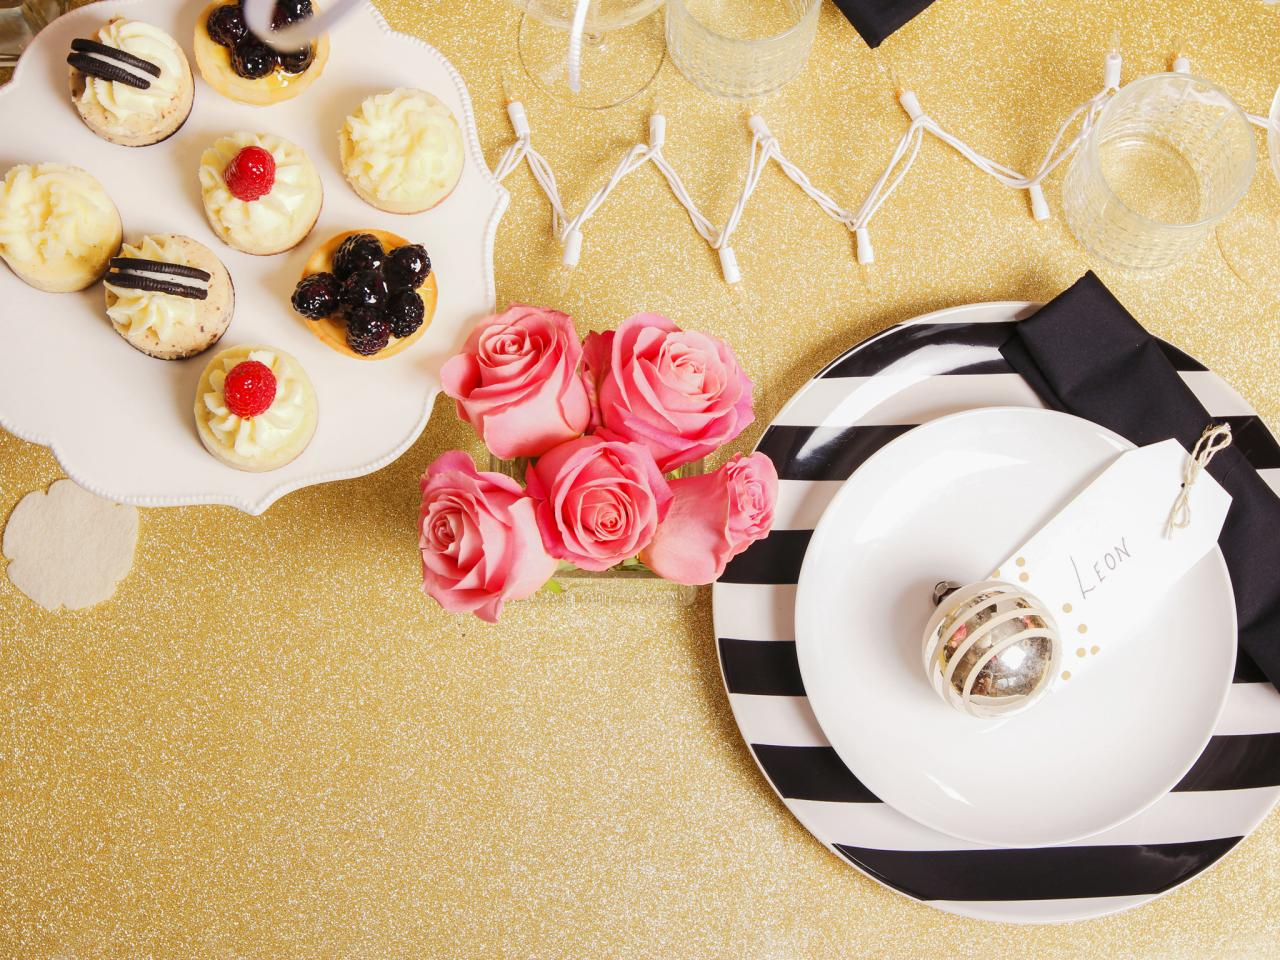 Original_Jeanine-Hays-new-years-eve-upcycle-ornament-place-setting_h.jpg.rend.hgtvcom.1280.960.jpg